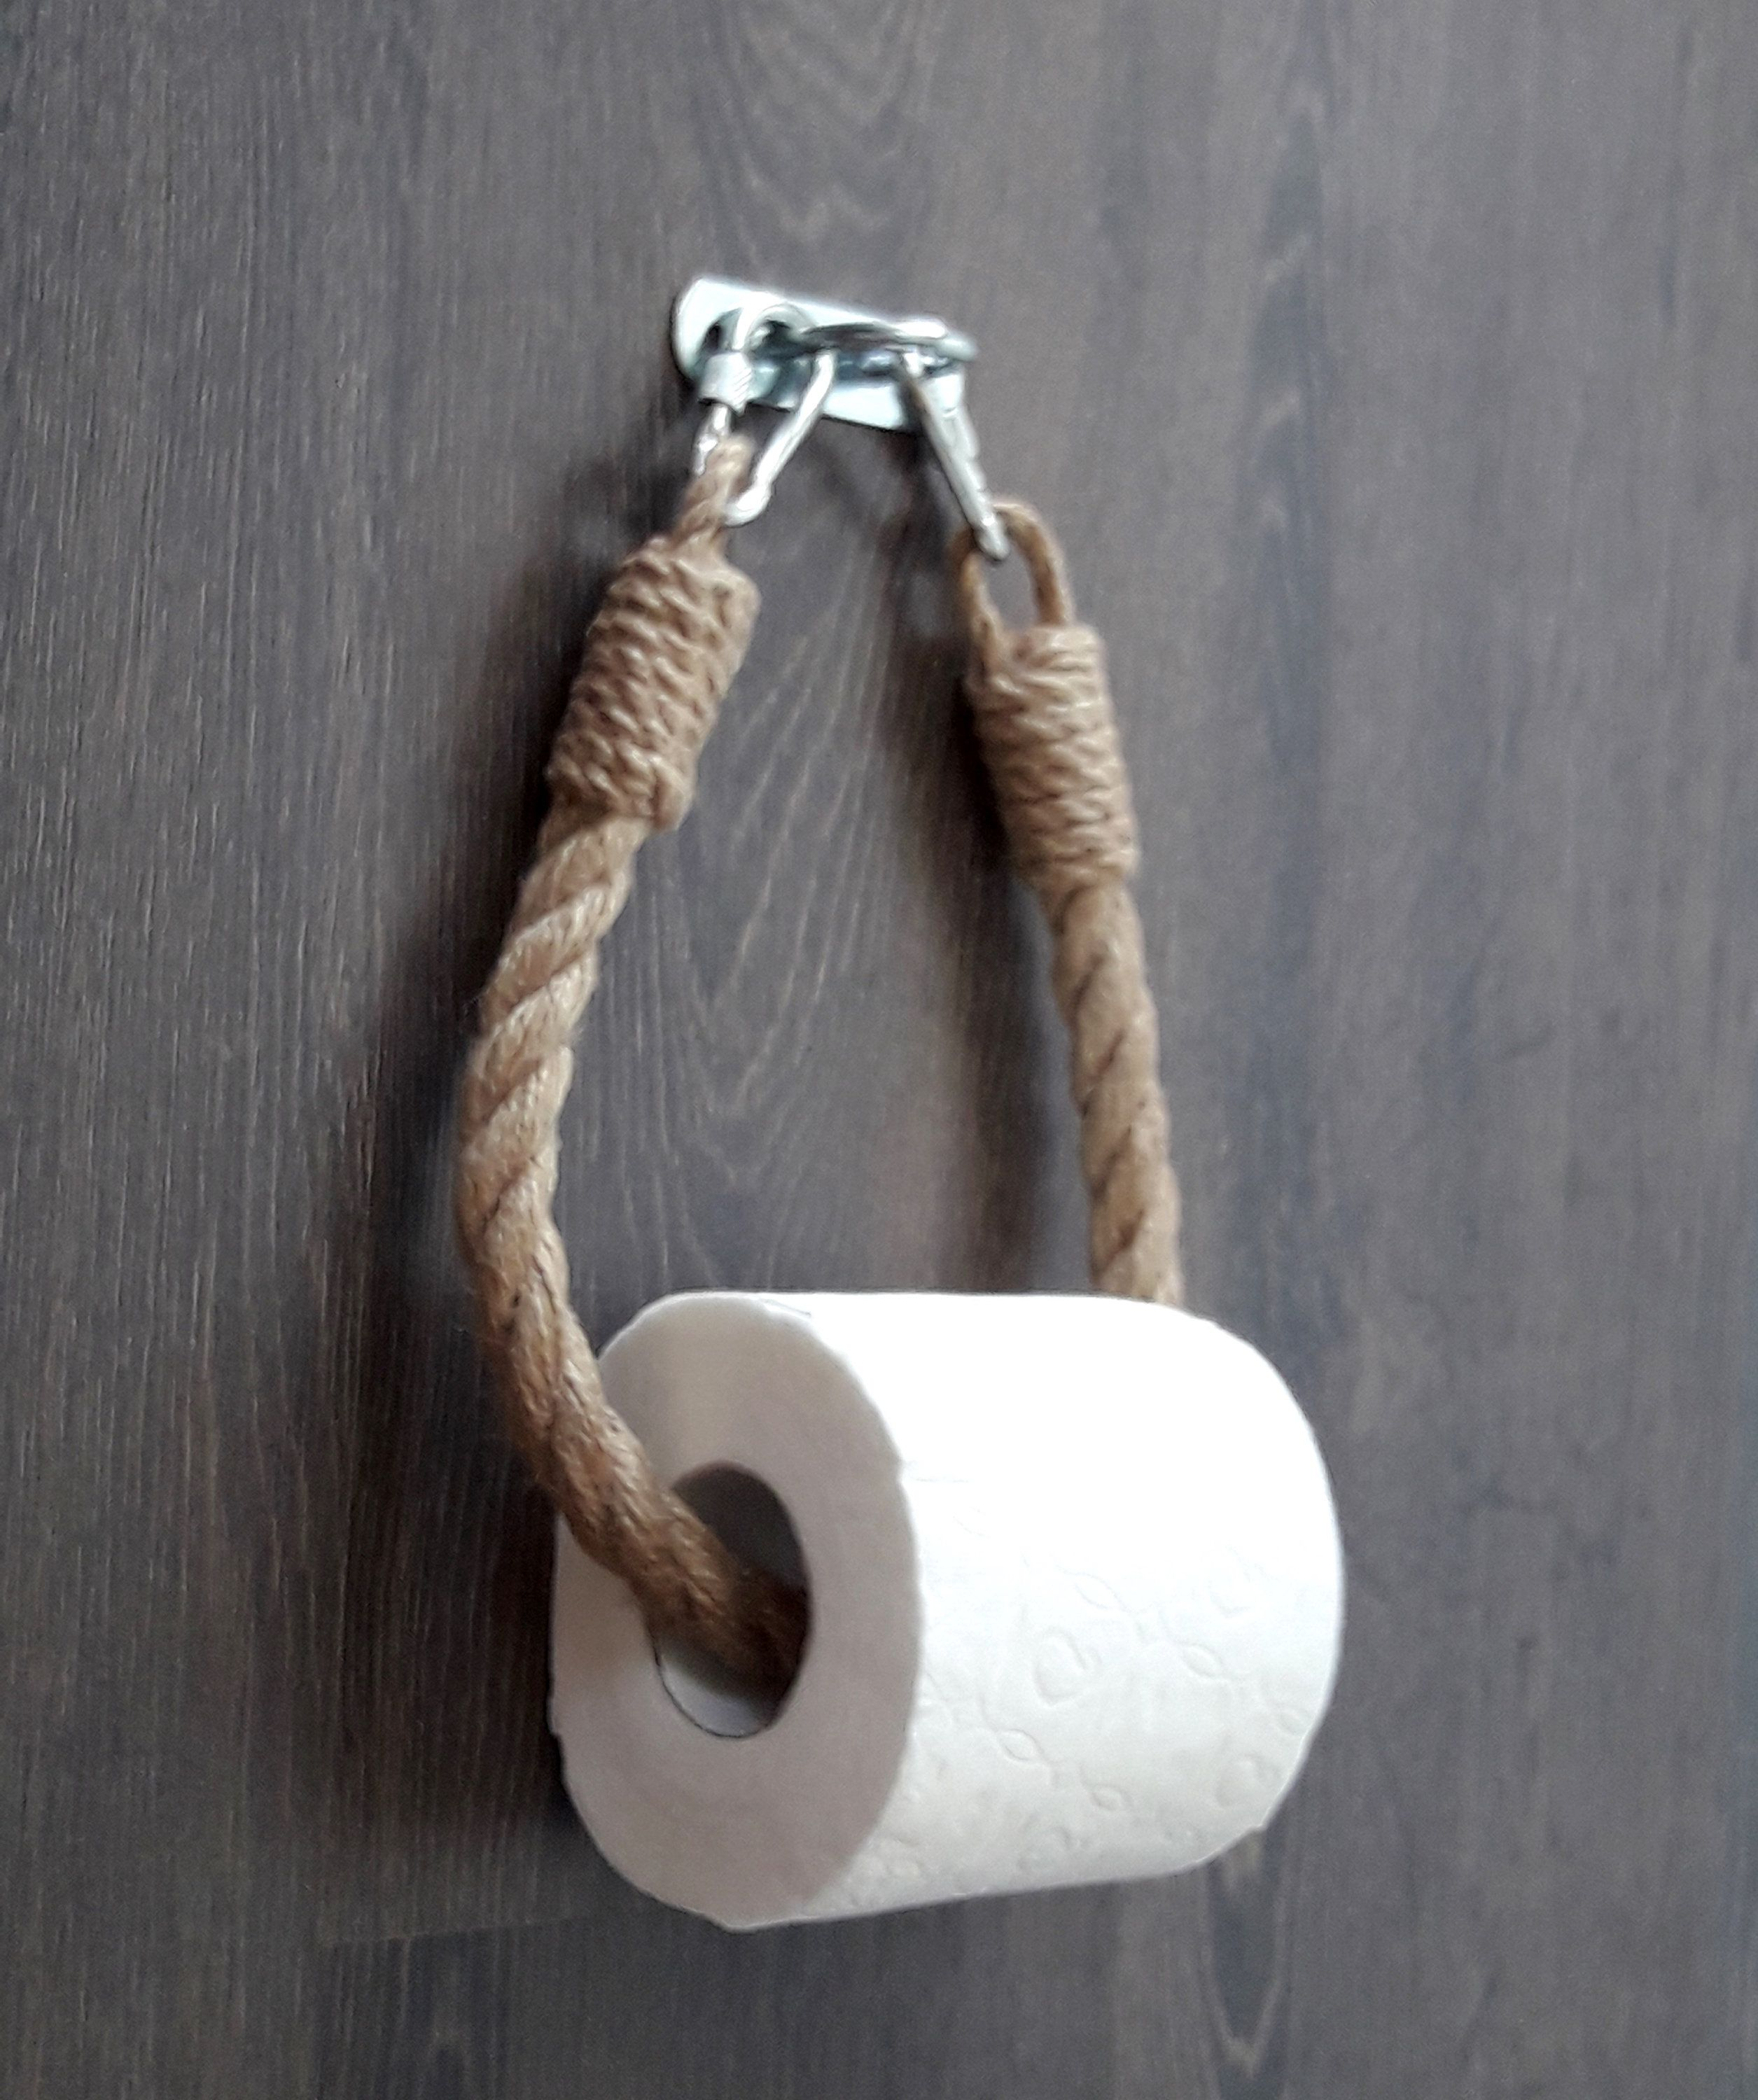 Industrial Toilet Paper Holder Jute Rope Decor For Bathroom